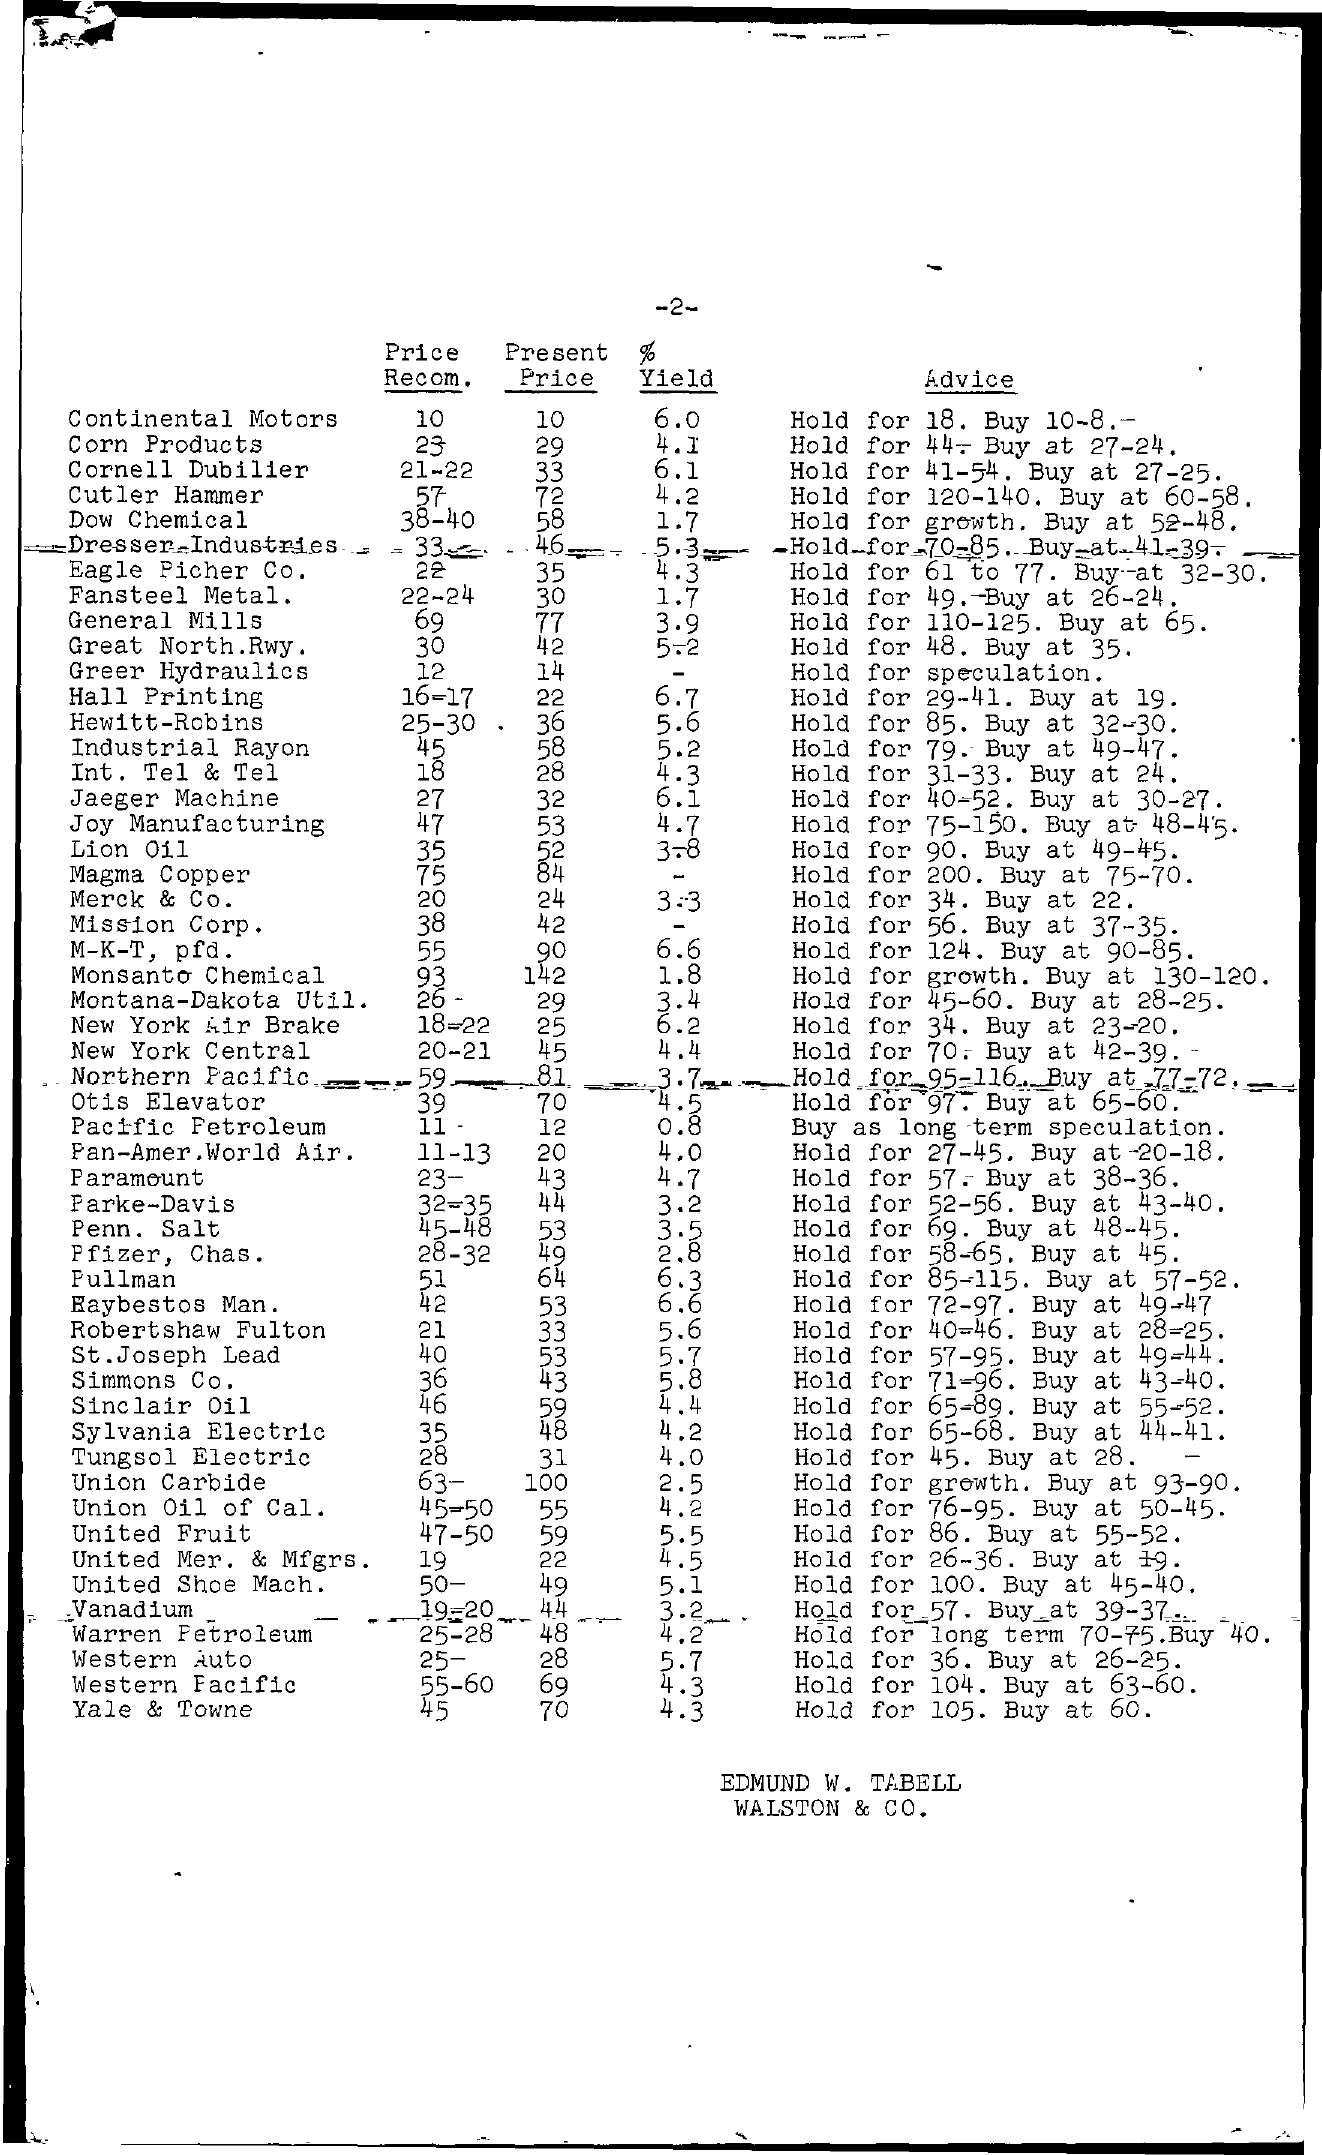 Tabell's Market Letter - July 01, 1955 page 2